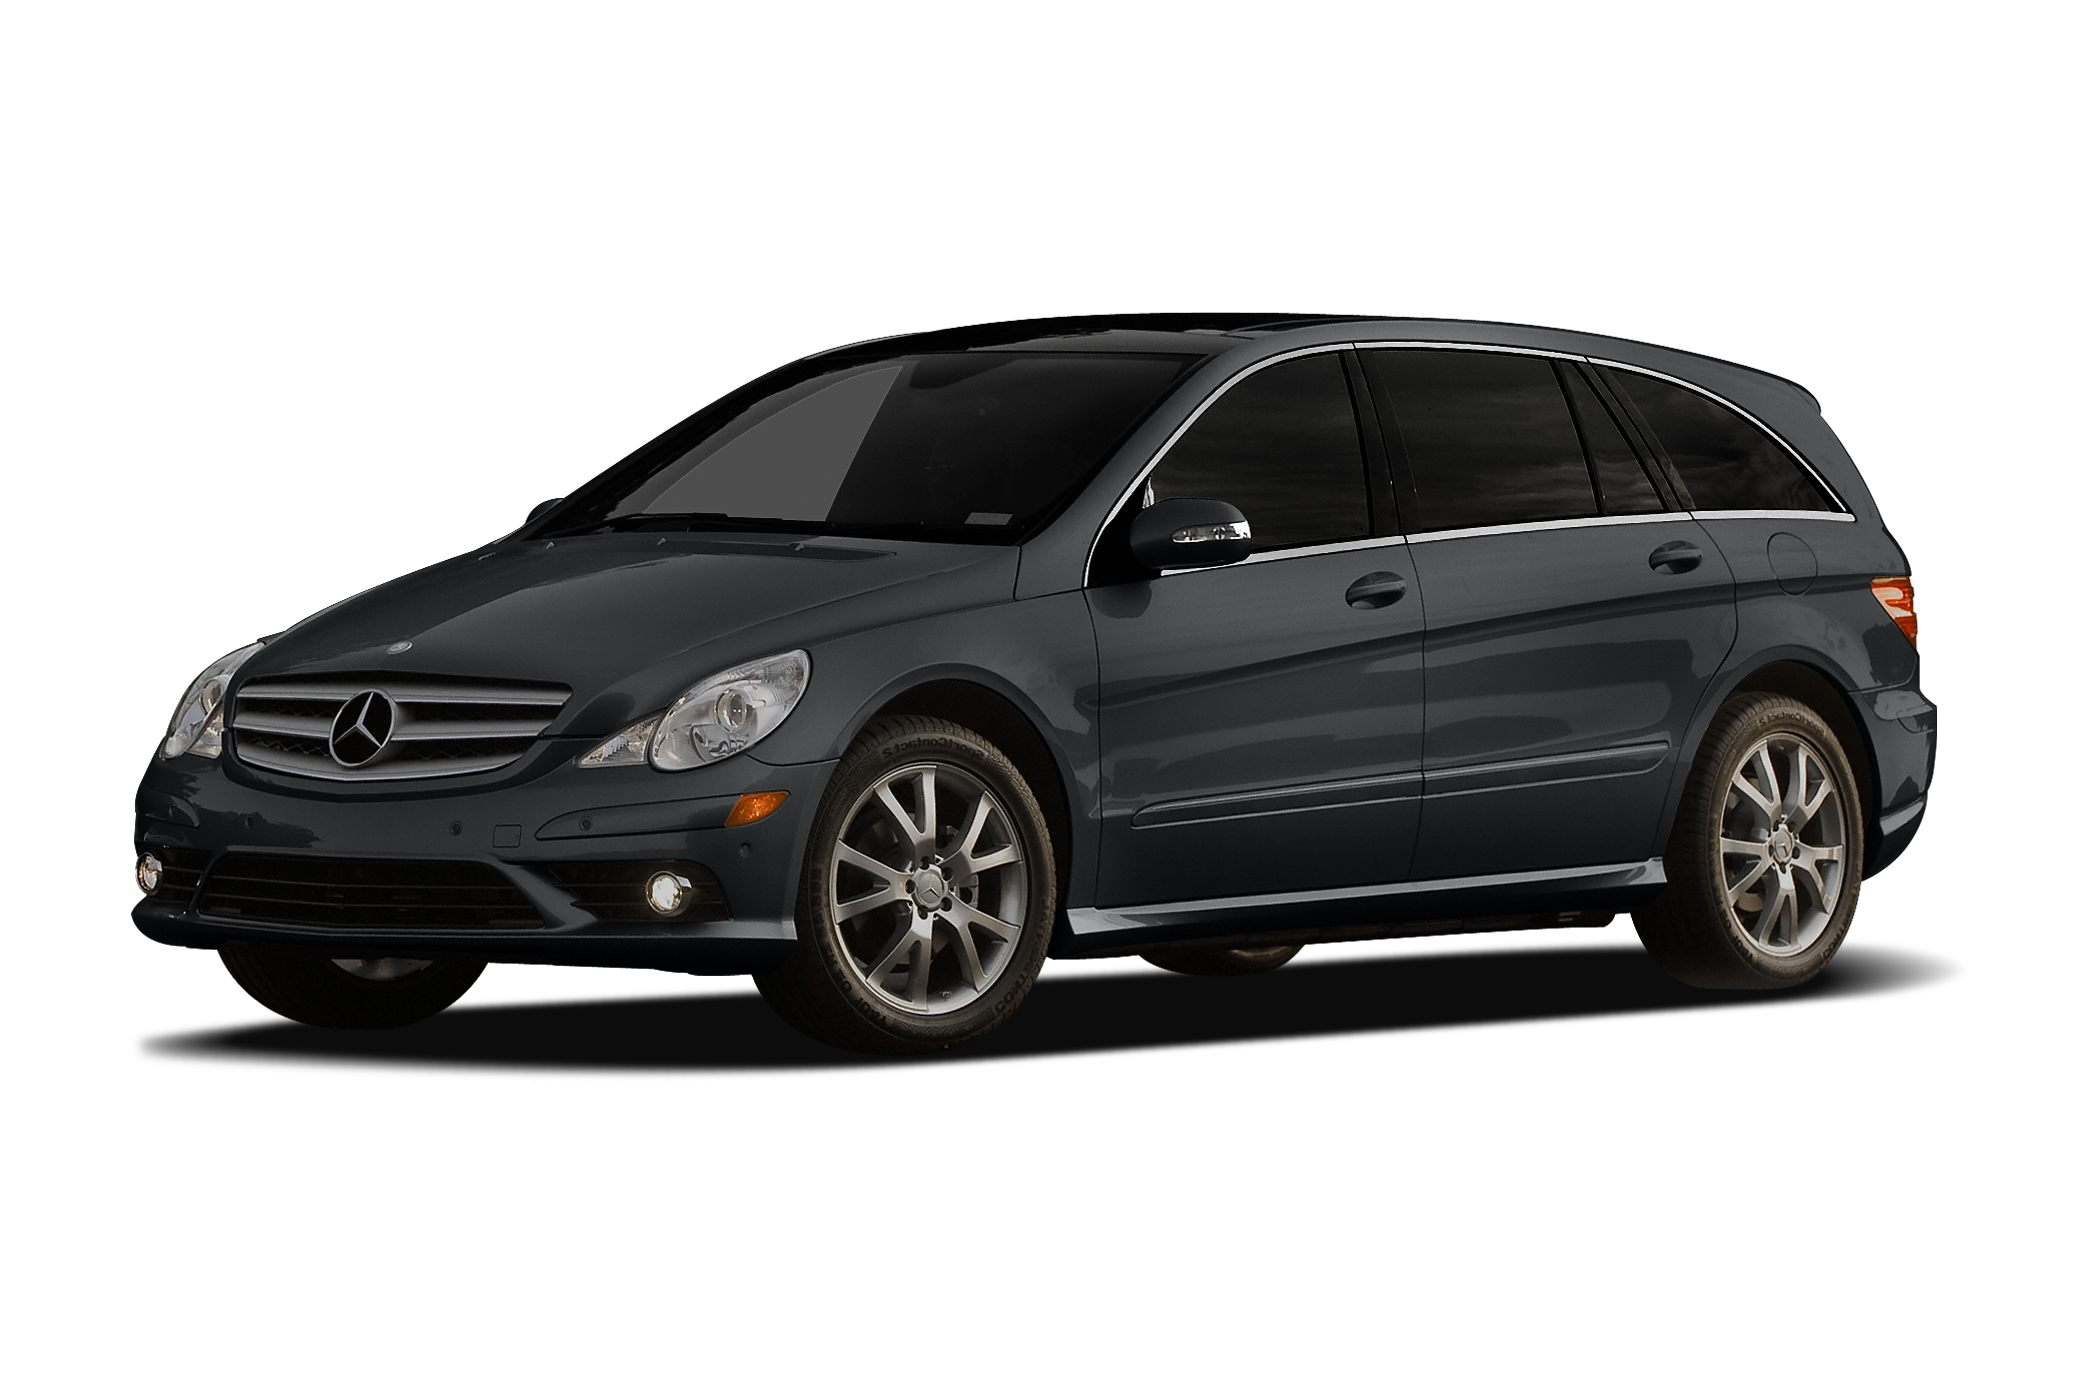 2010 Mercedes-Benz R-Class R350 4MATIC Wagon for sale in Springfield for $24,000 with 34,441 miles